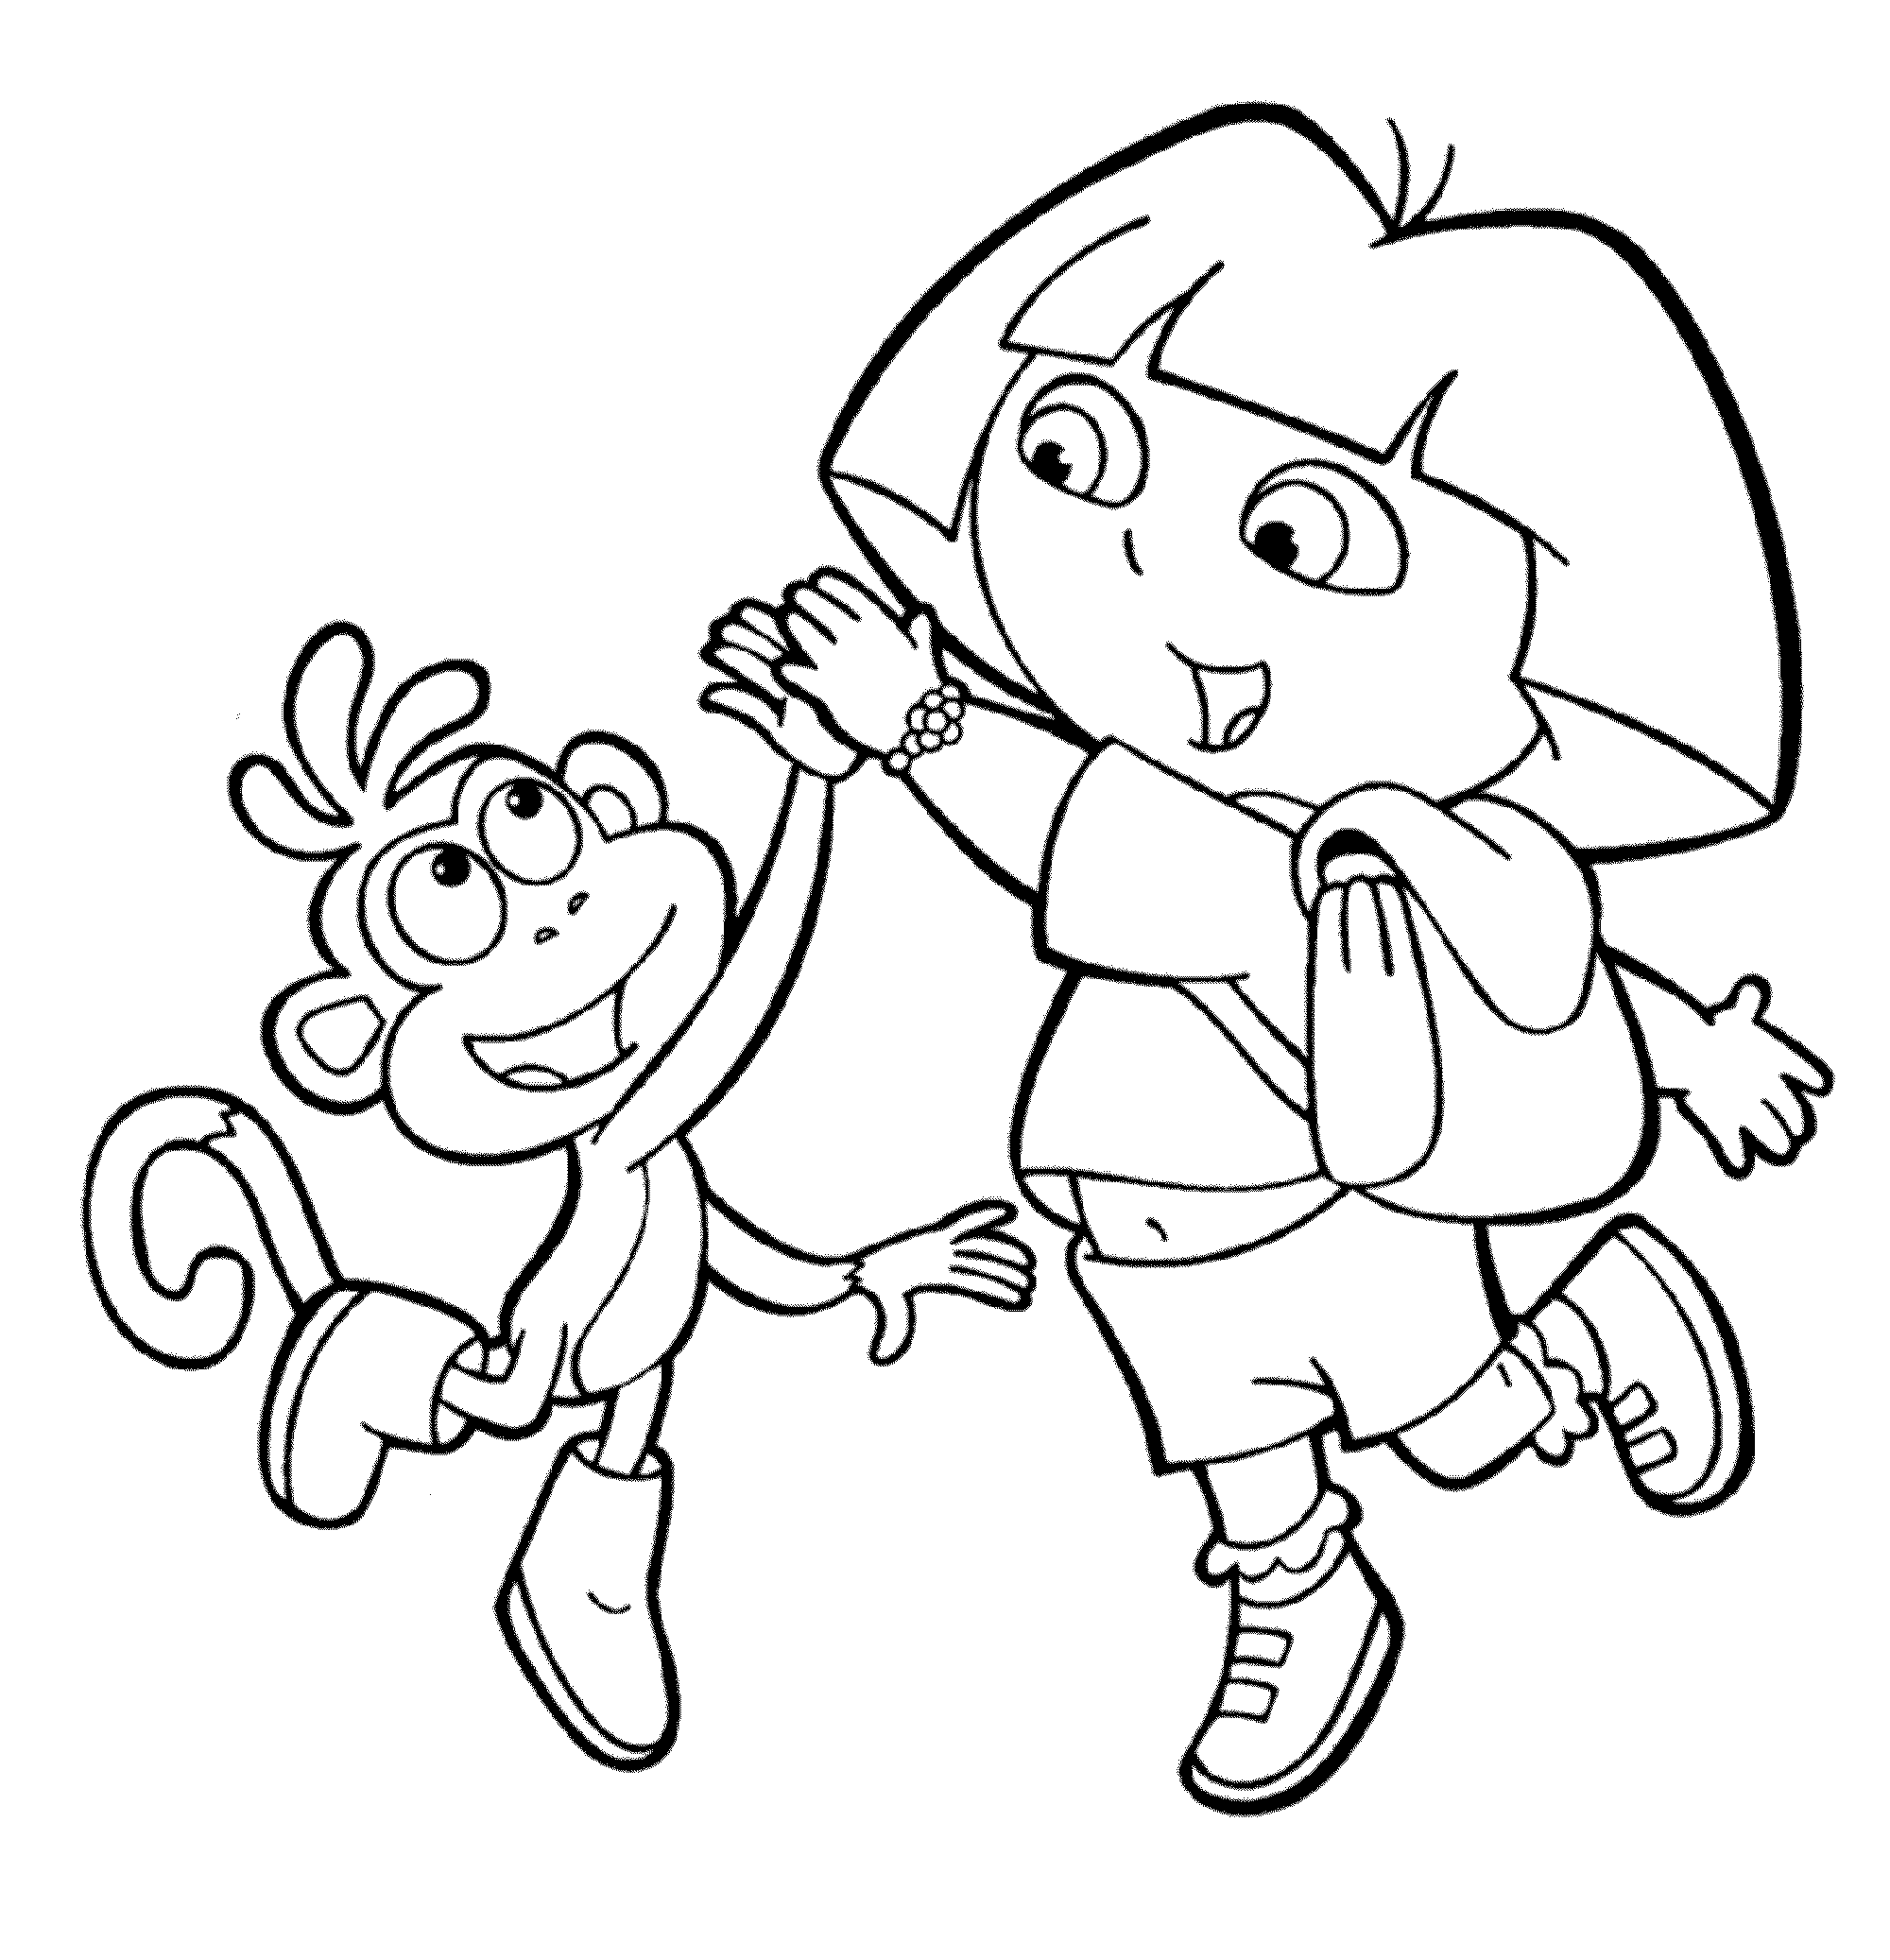 dora coloring page print download dora coloring pages to learn new things page coloring dora